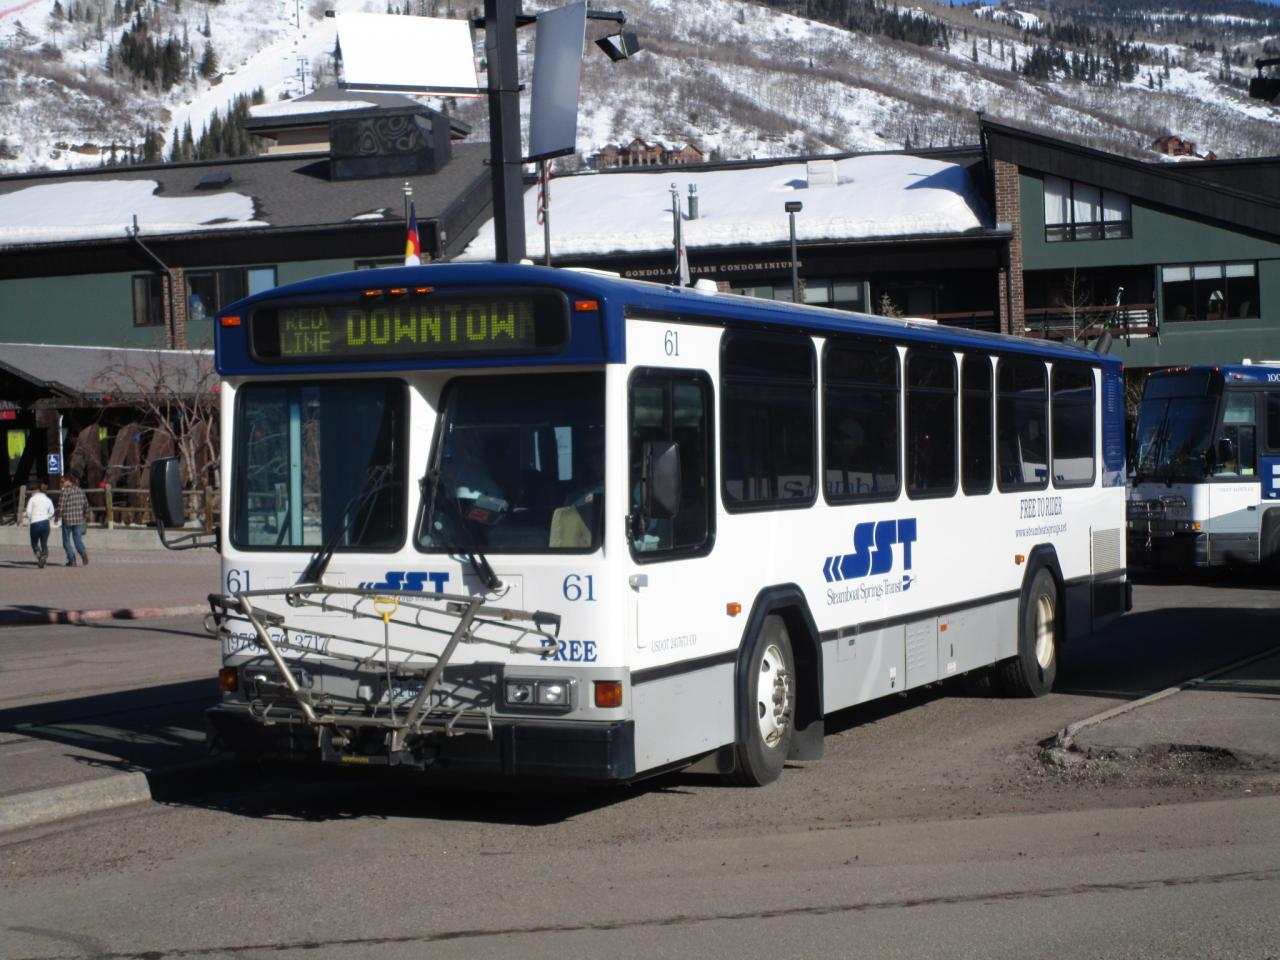 transit in colorado ski towns part 1 the lift winter park and steamboat springs transit western us canadian public transit discussion board transit in colorado ski towns part 1